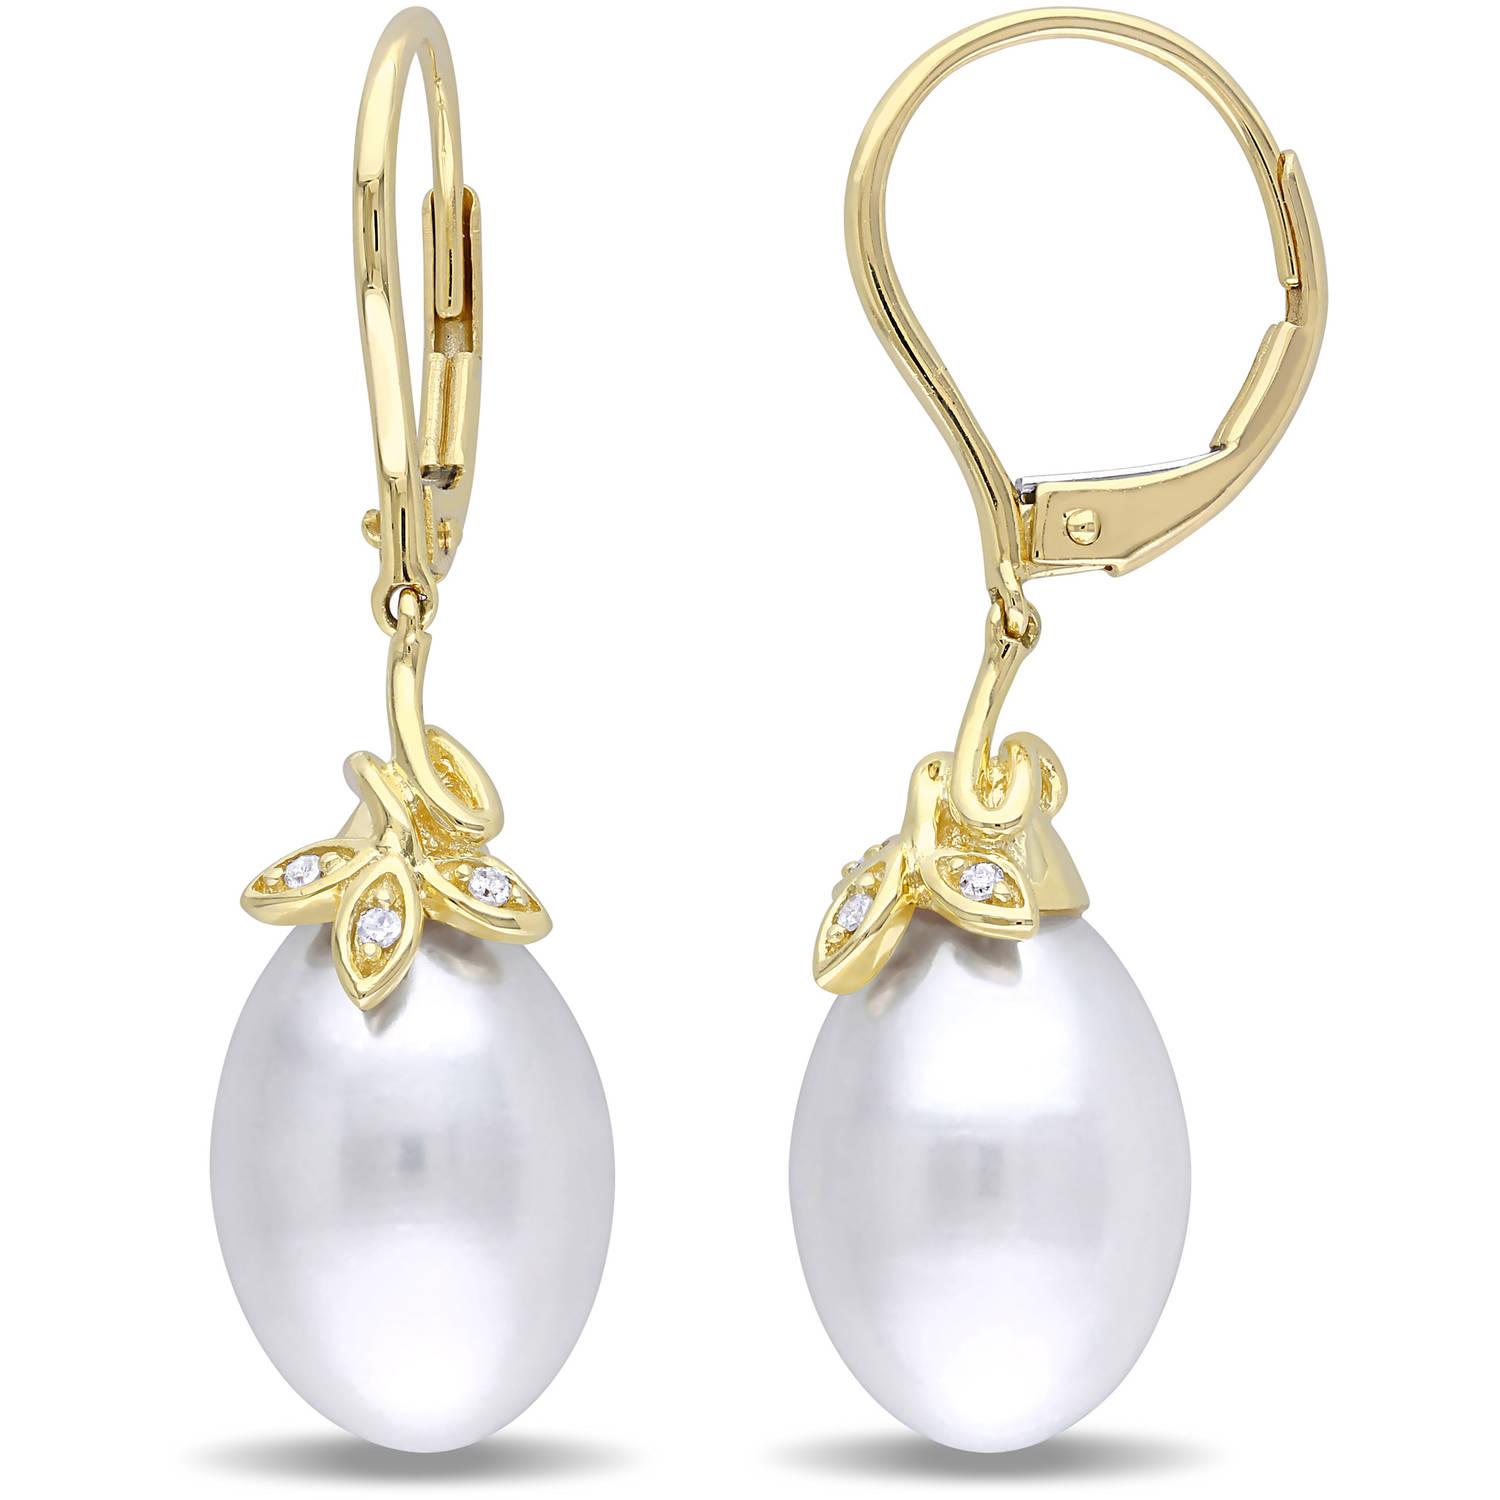 Miabella 9-10mm White Rice Cultured Freshwater Pearl and Diamond-Accent 10kt Yellow Gold Leverback Earrings